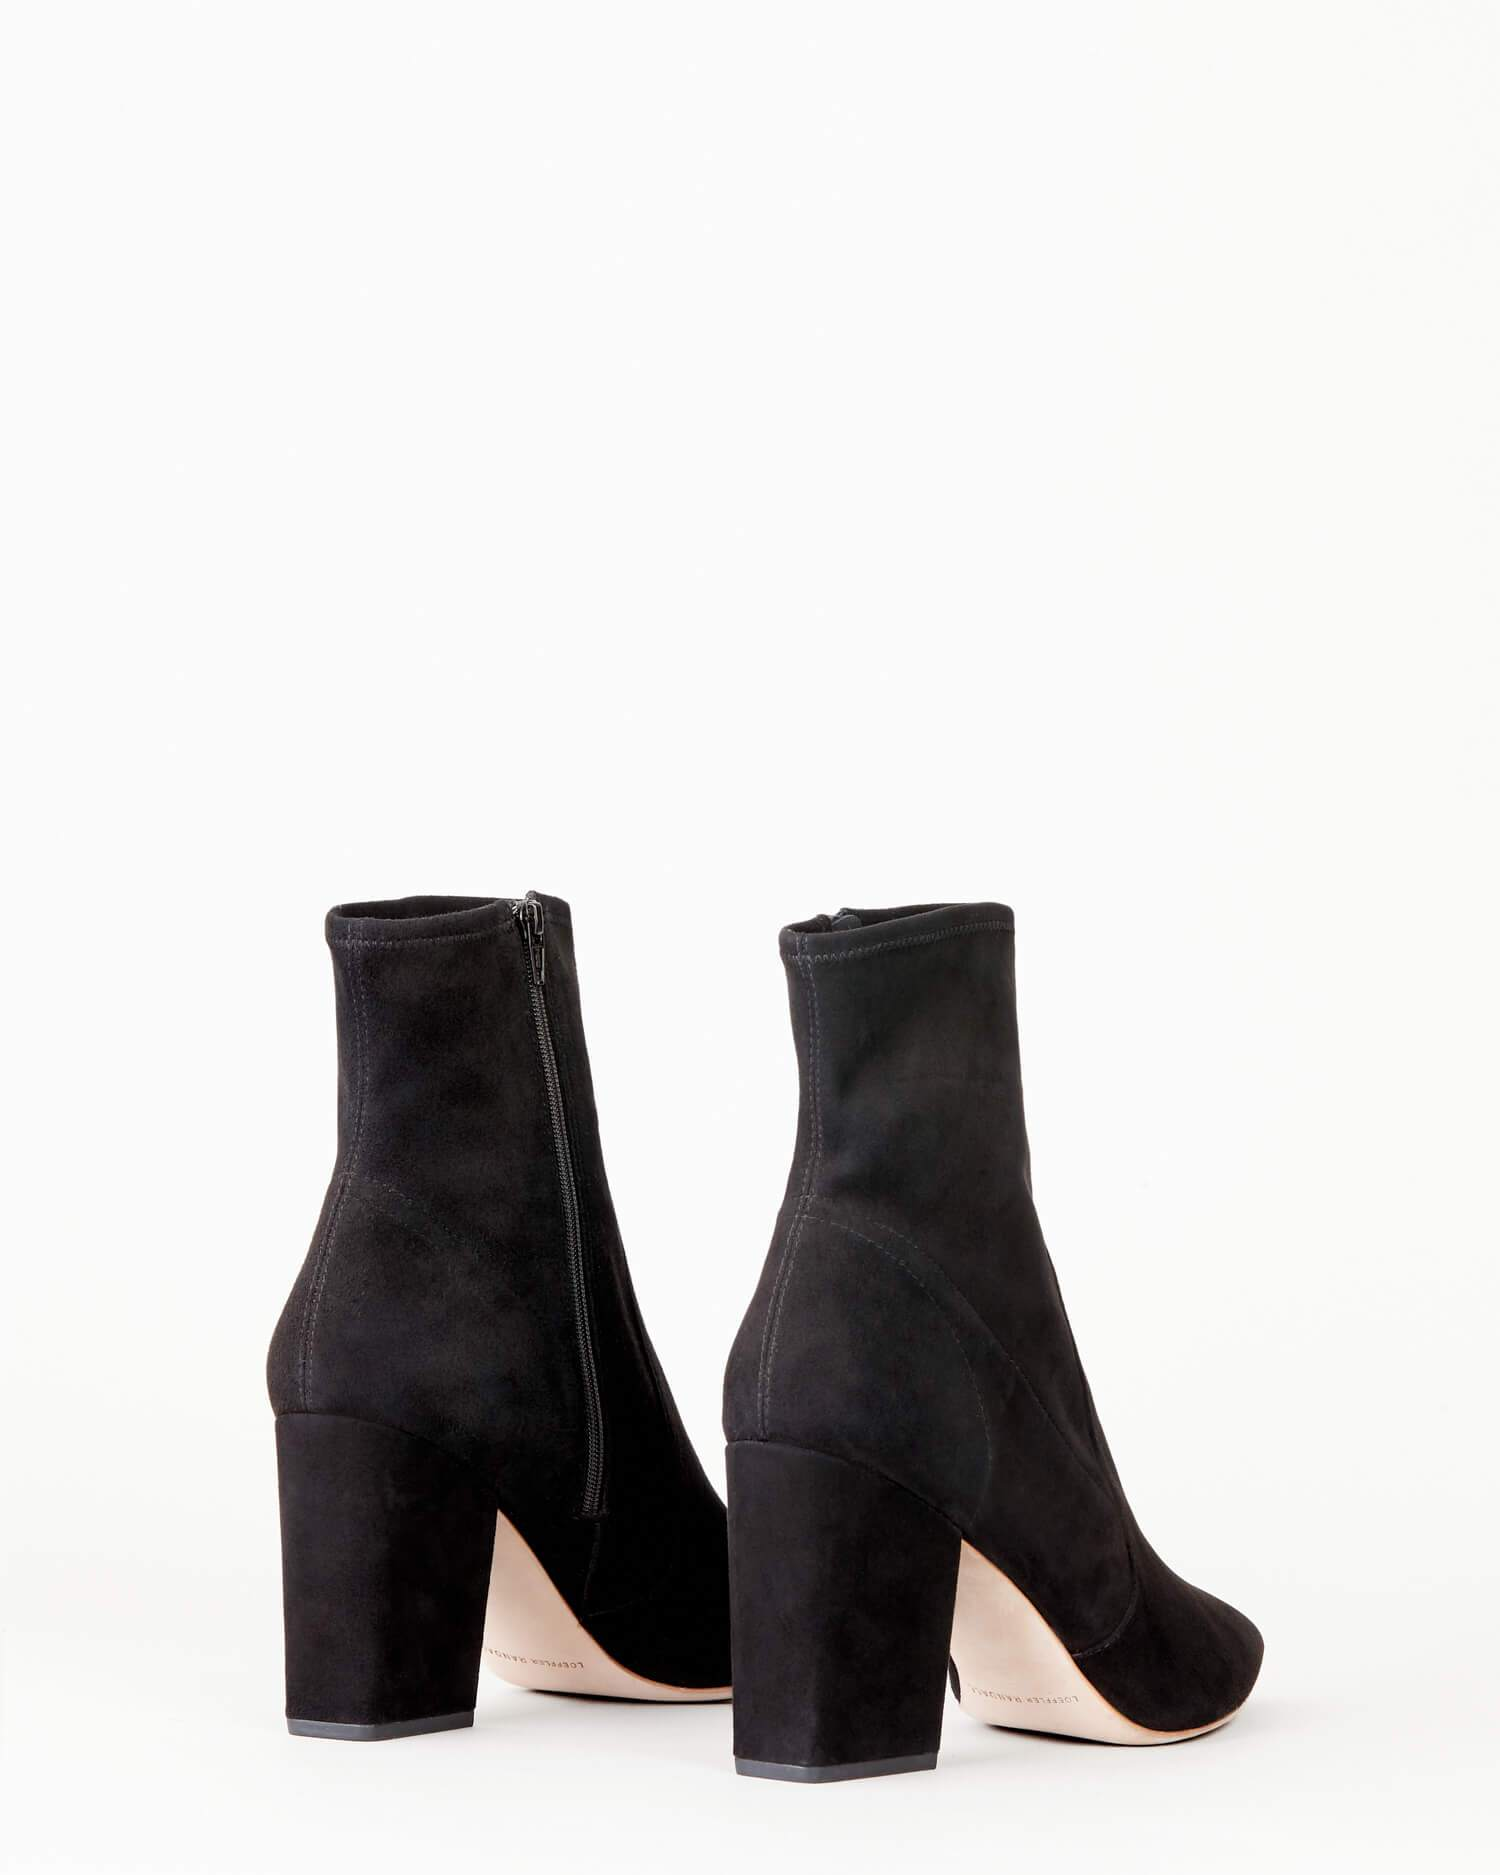 color: Black Suede